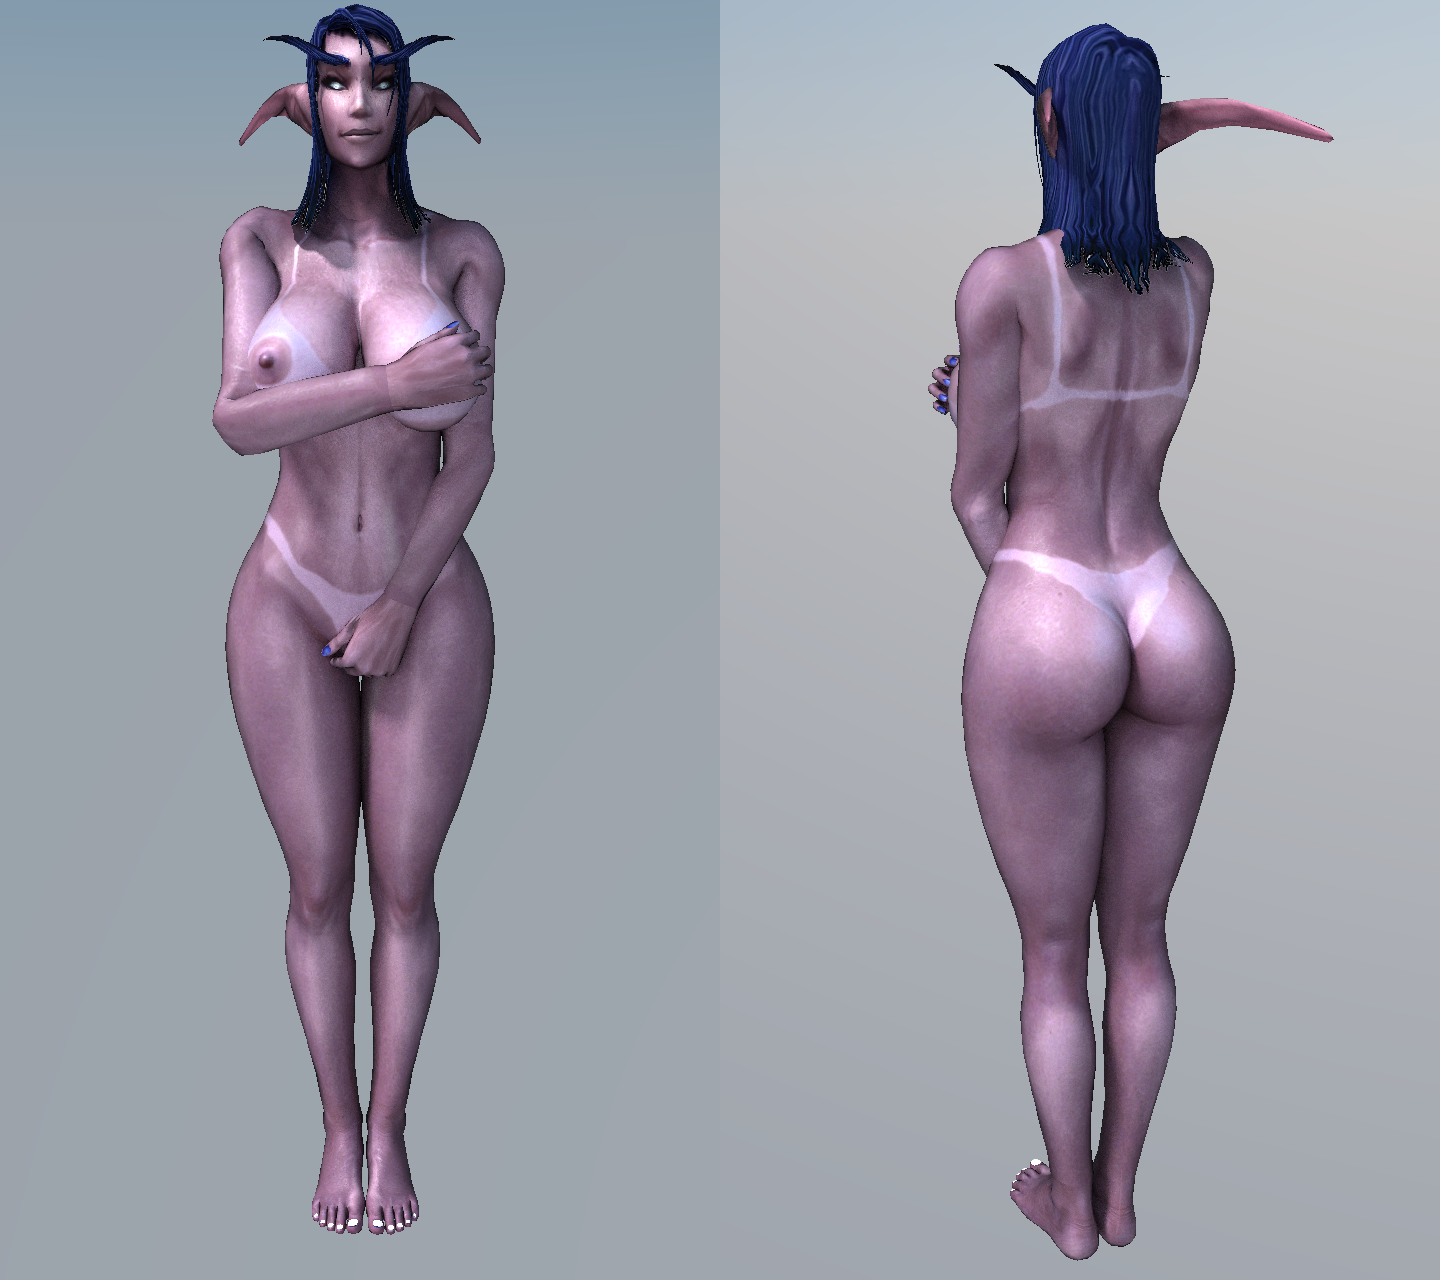 Night elf literotica nude photo